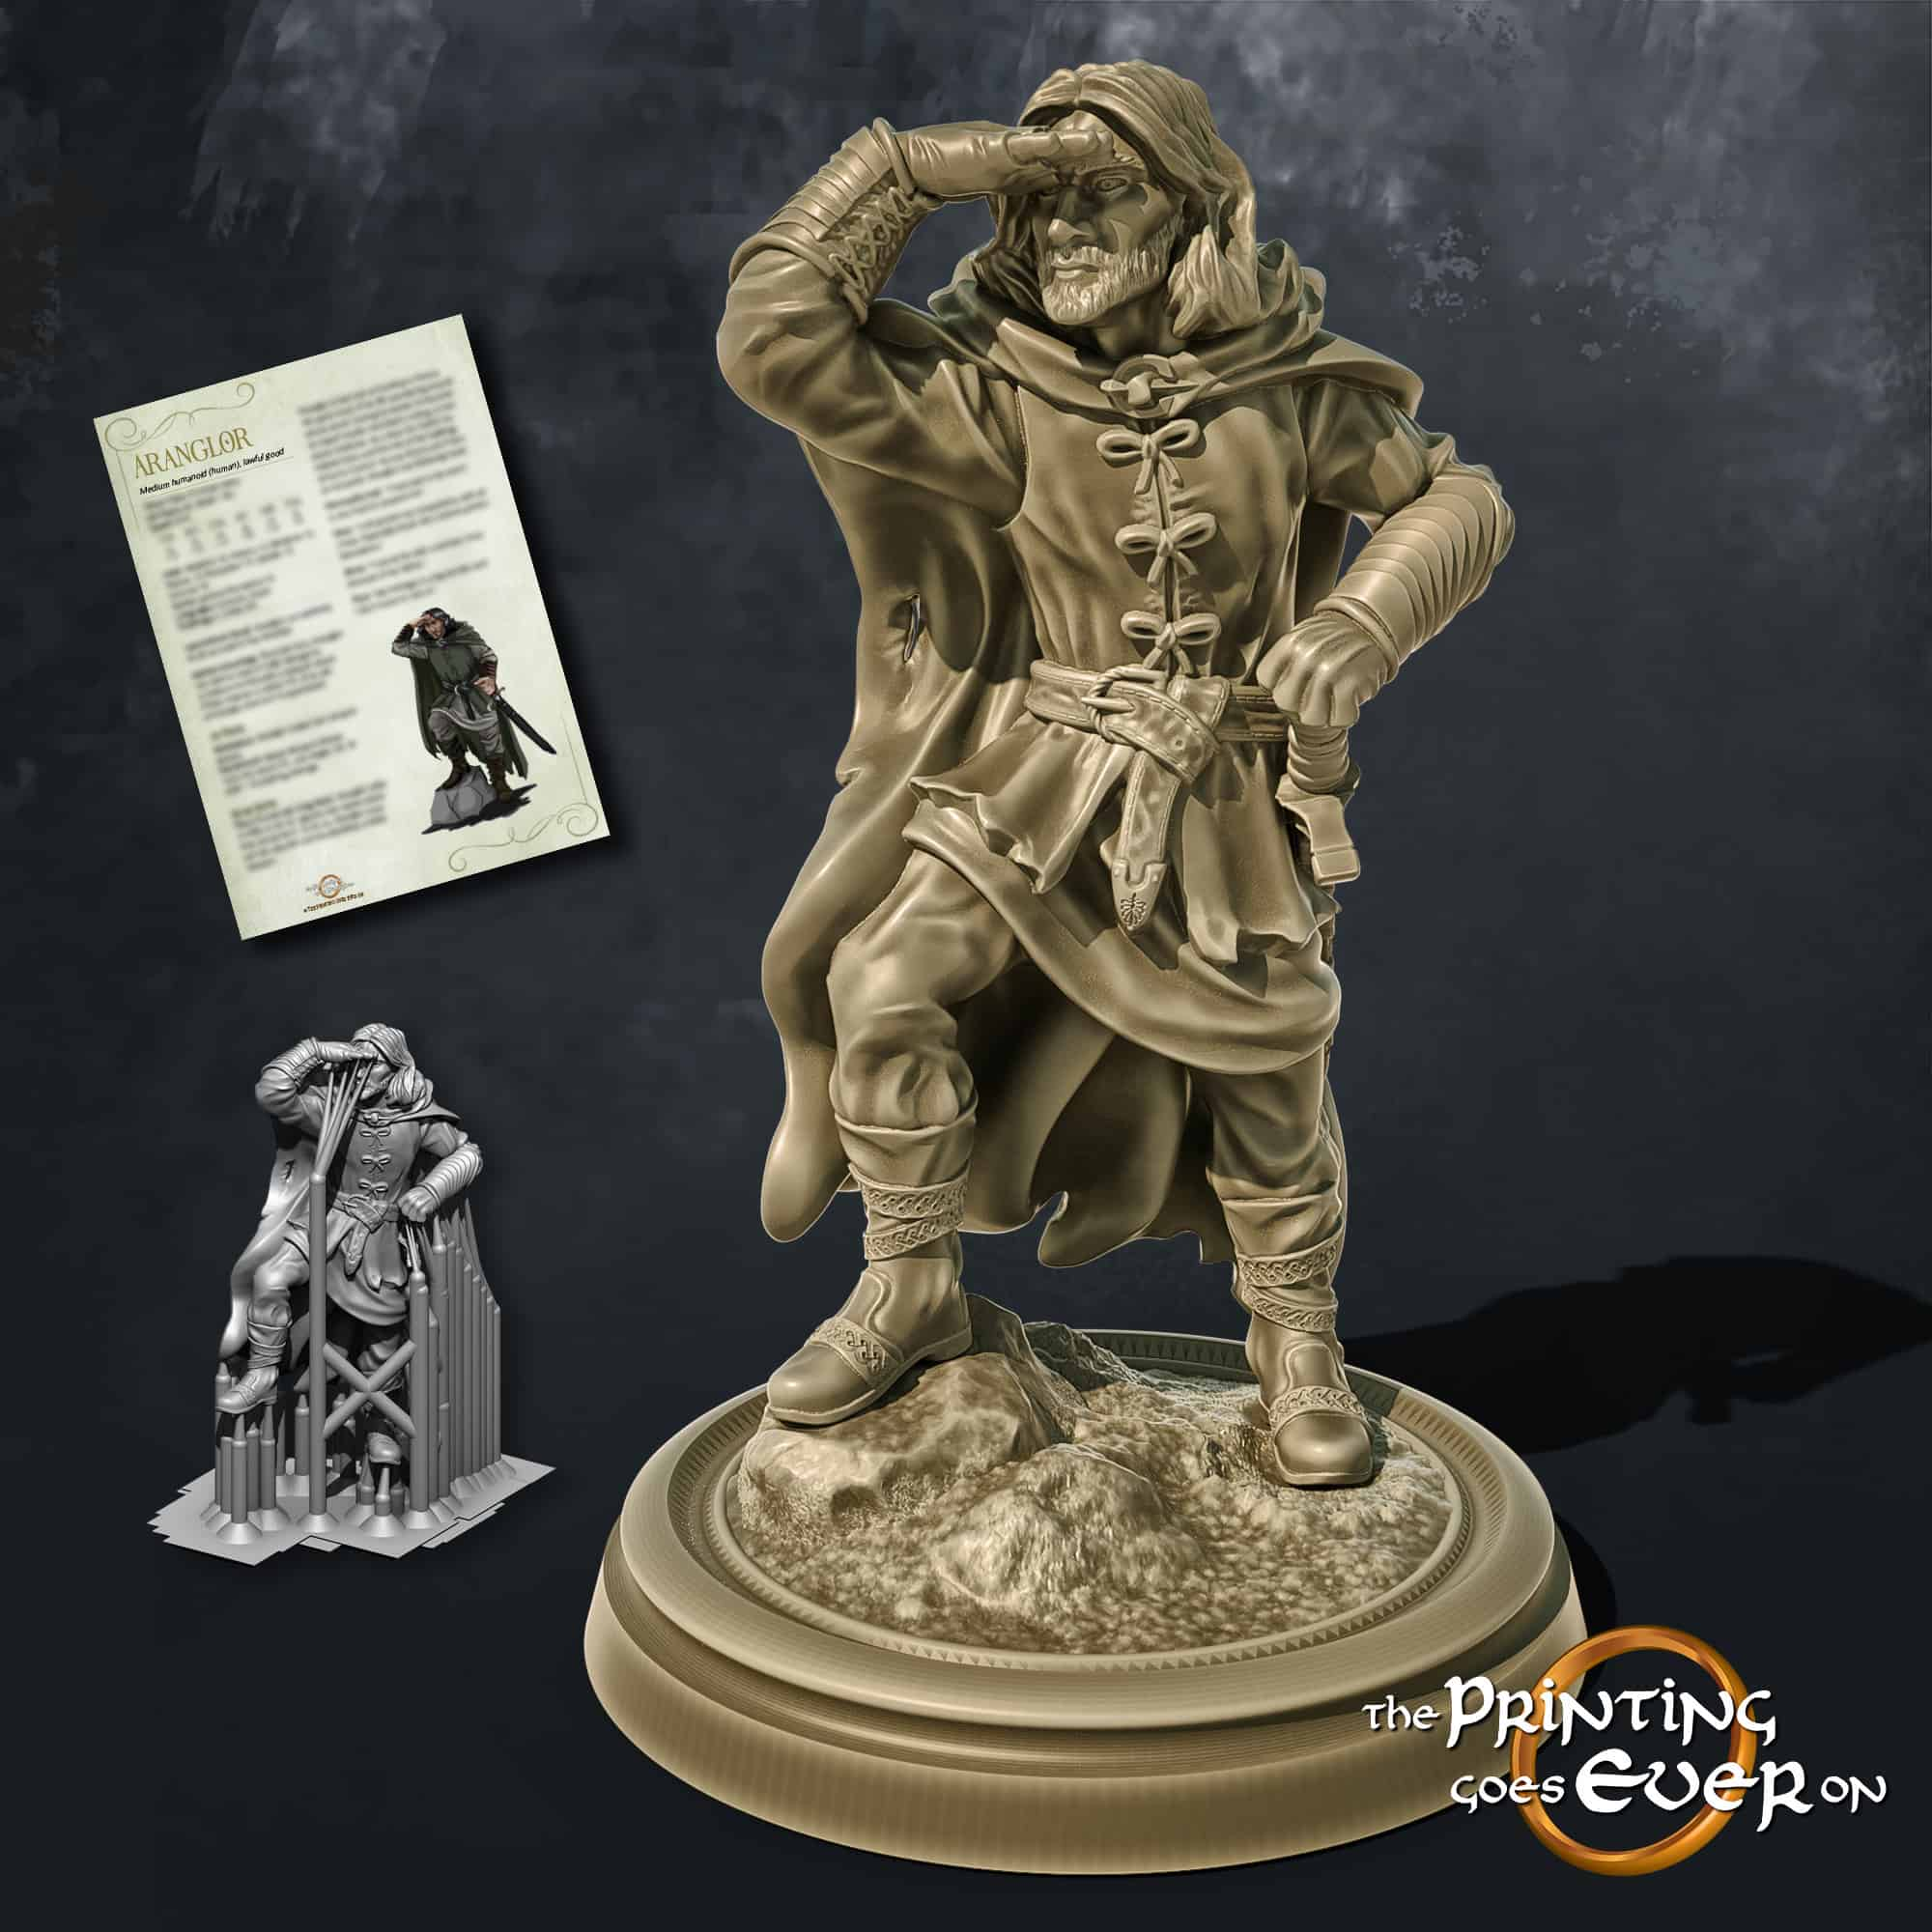 aranglor human ranger looking into the distance with sword 3d printable tabletop miniature from the printing goes ever on patreon welcome trove